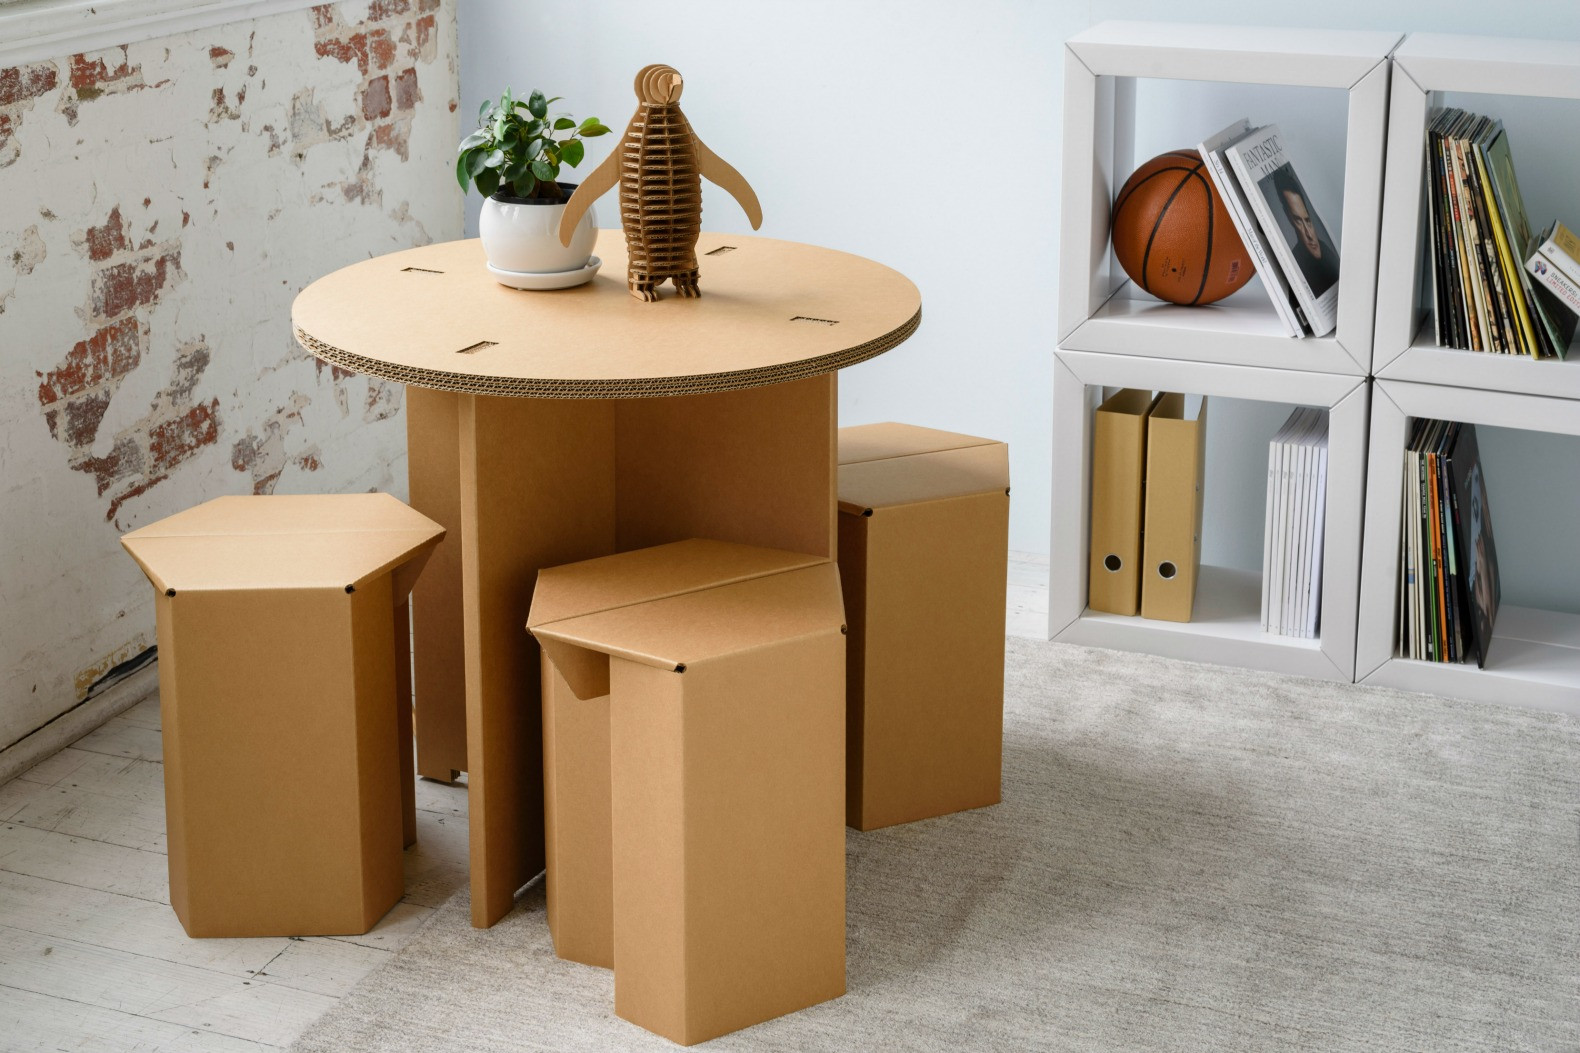 Best ideas about Cardboard Furniture DIY . Save or Pin Karton creates ultra durable cardboard furniture for every Now.